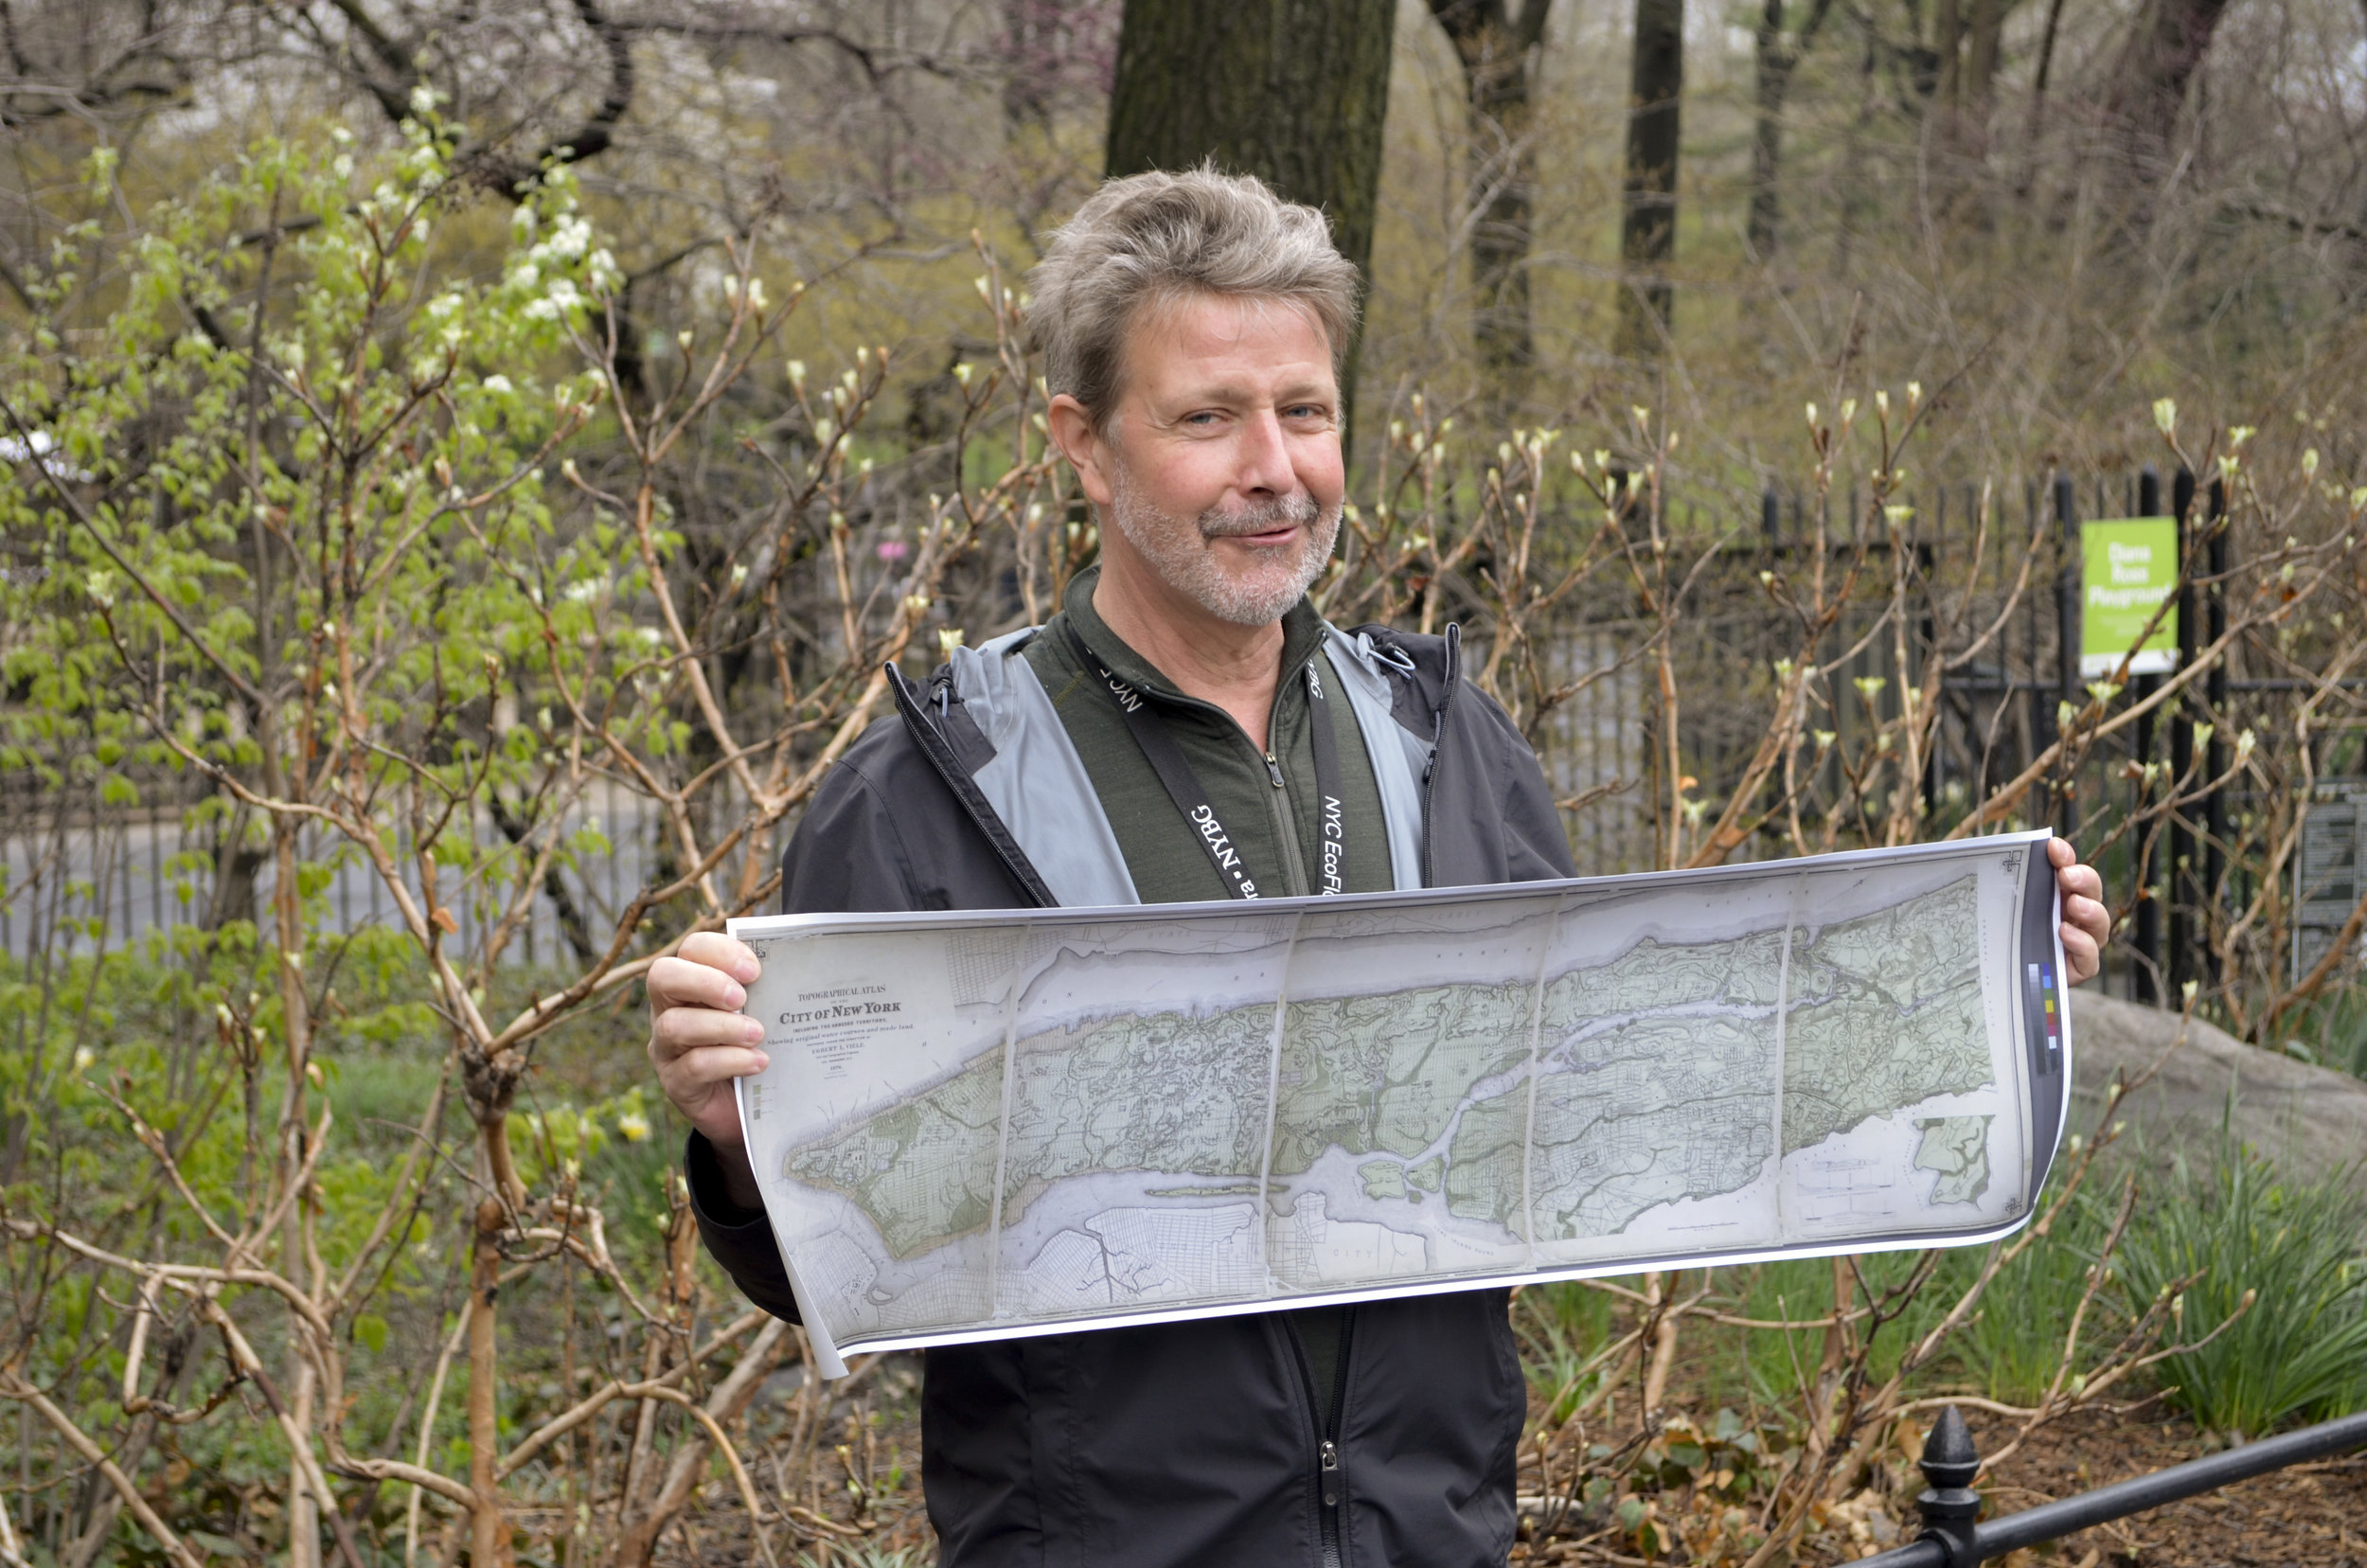 April 13 - Botany Walk in Central Park with NYBG botanist, Daniel Atha